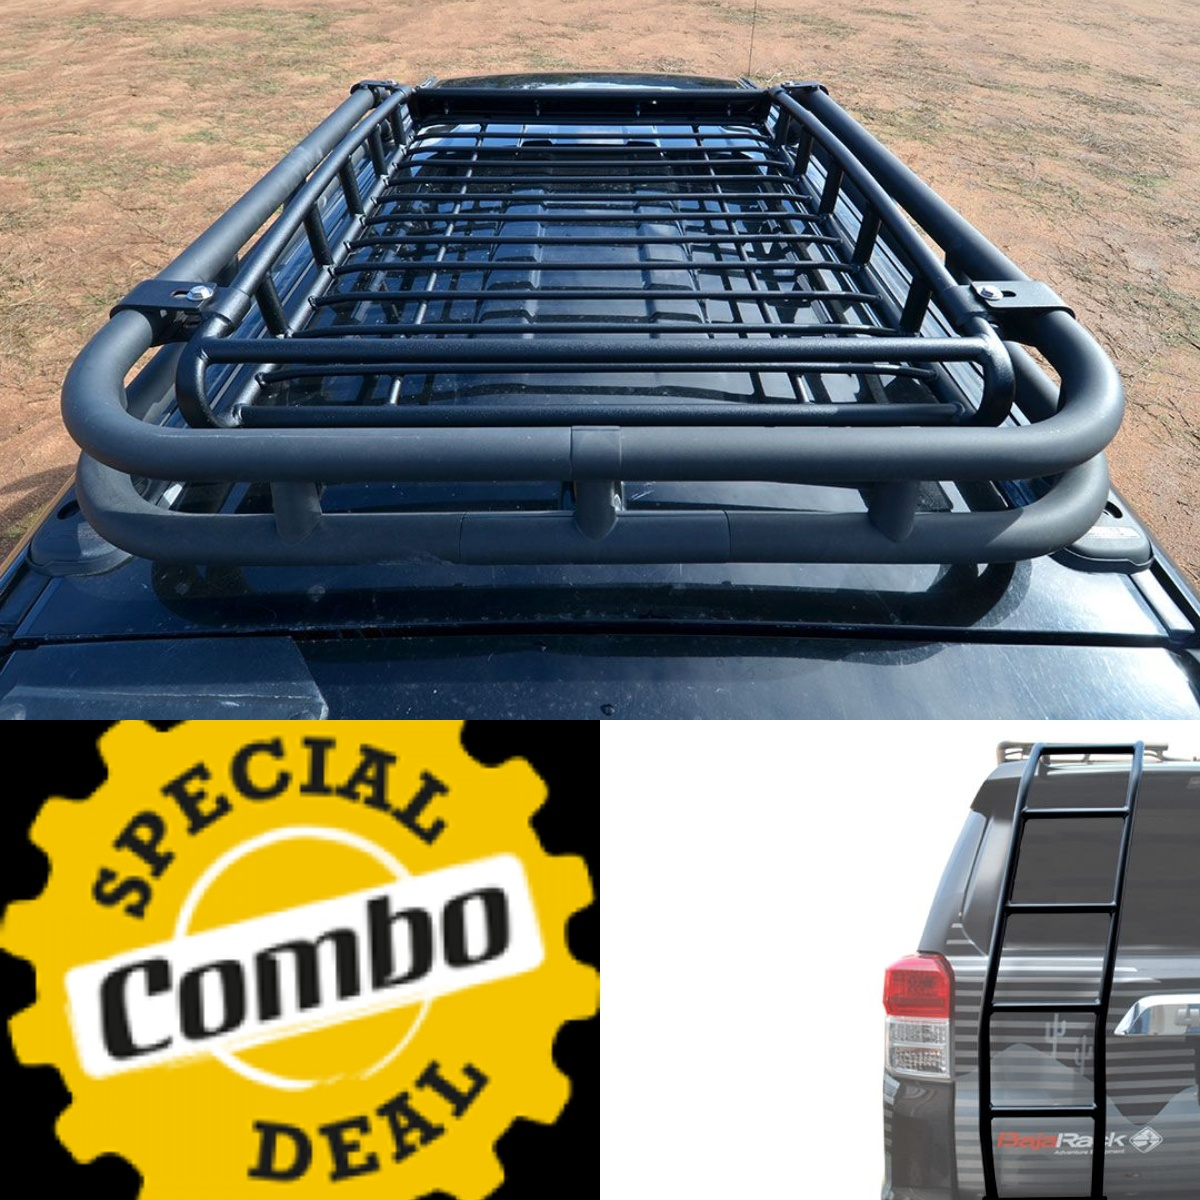 Baja Rack 4Runner Gen 5 TRD PRO OEM Basket Rack & Ladder Combo 2019-2020